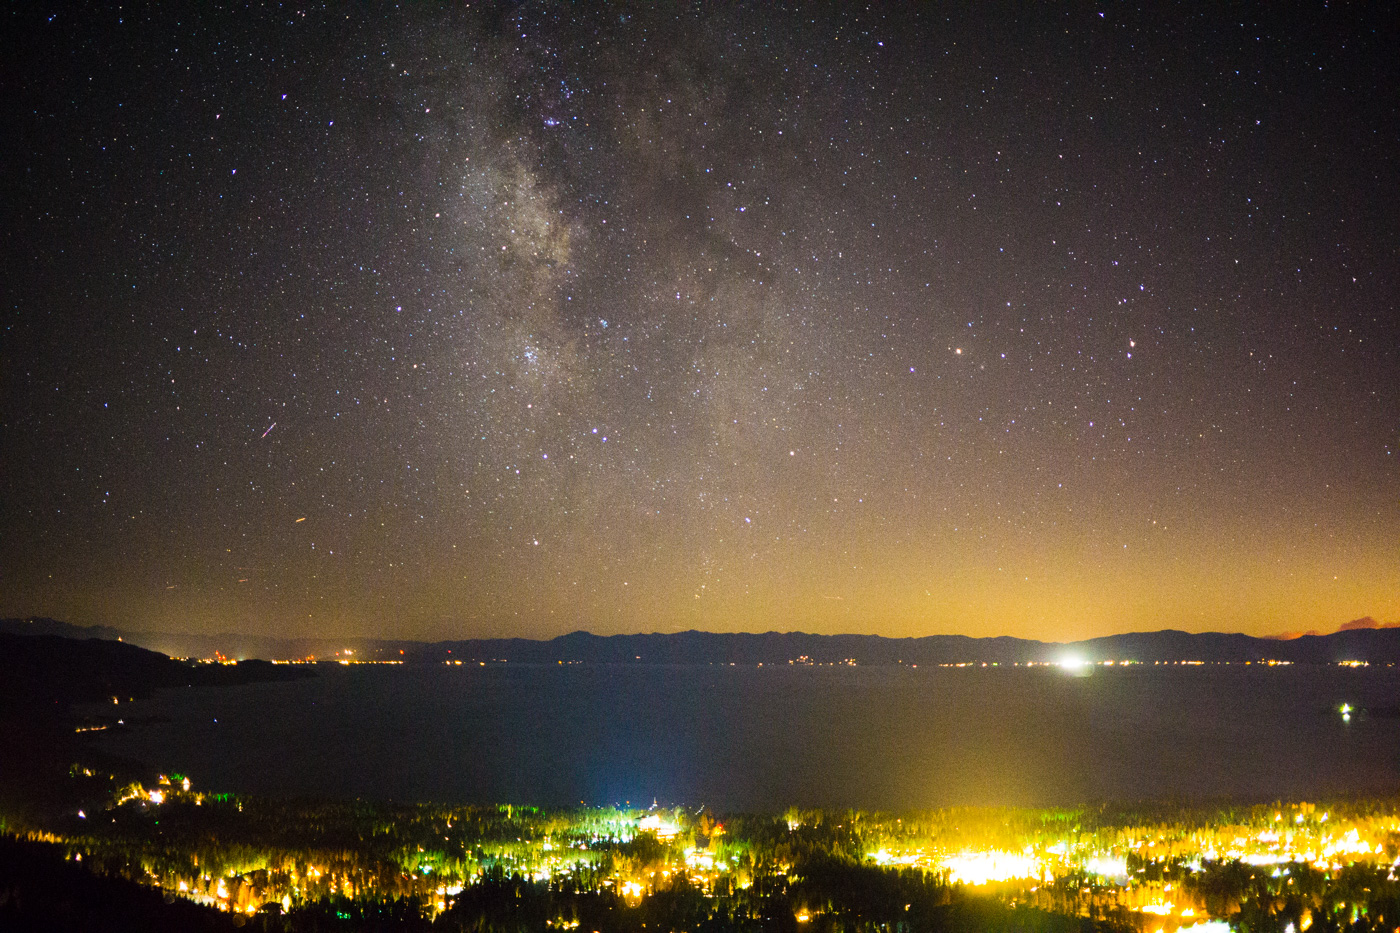 Sony a6000, Milky Way over Lake Tahoe, 10s, f/2.8, ISO 6400